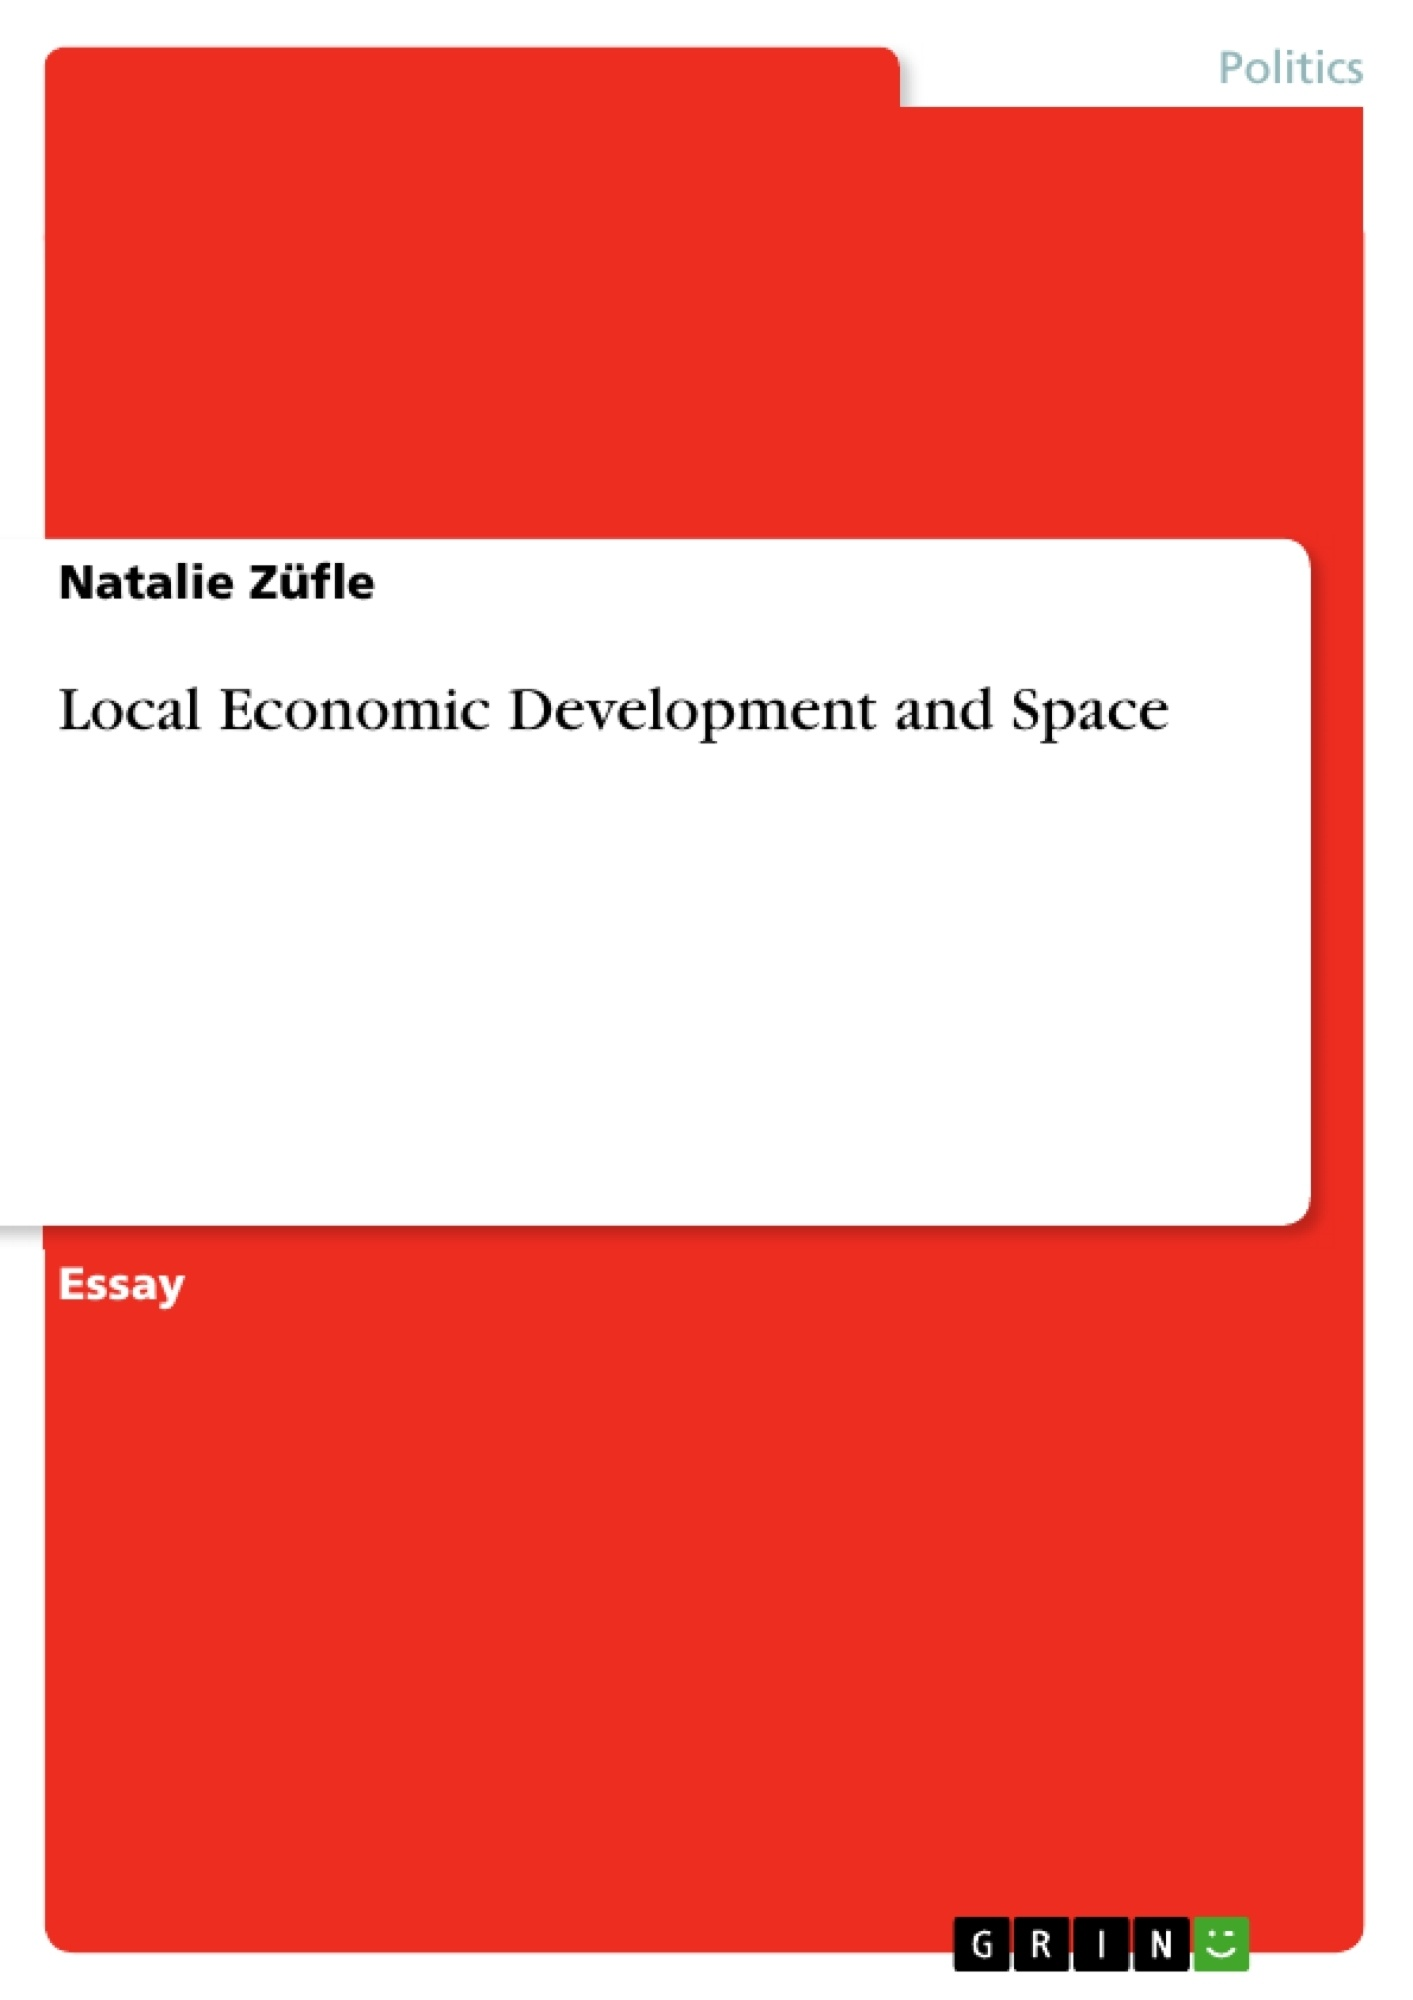 Title: Local Economic Development and Space